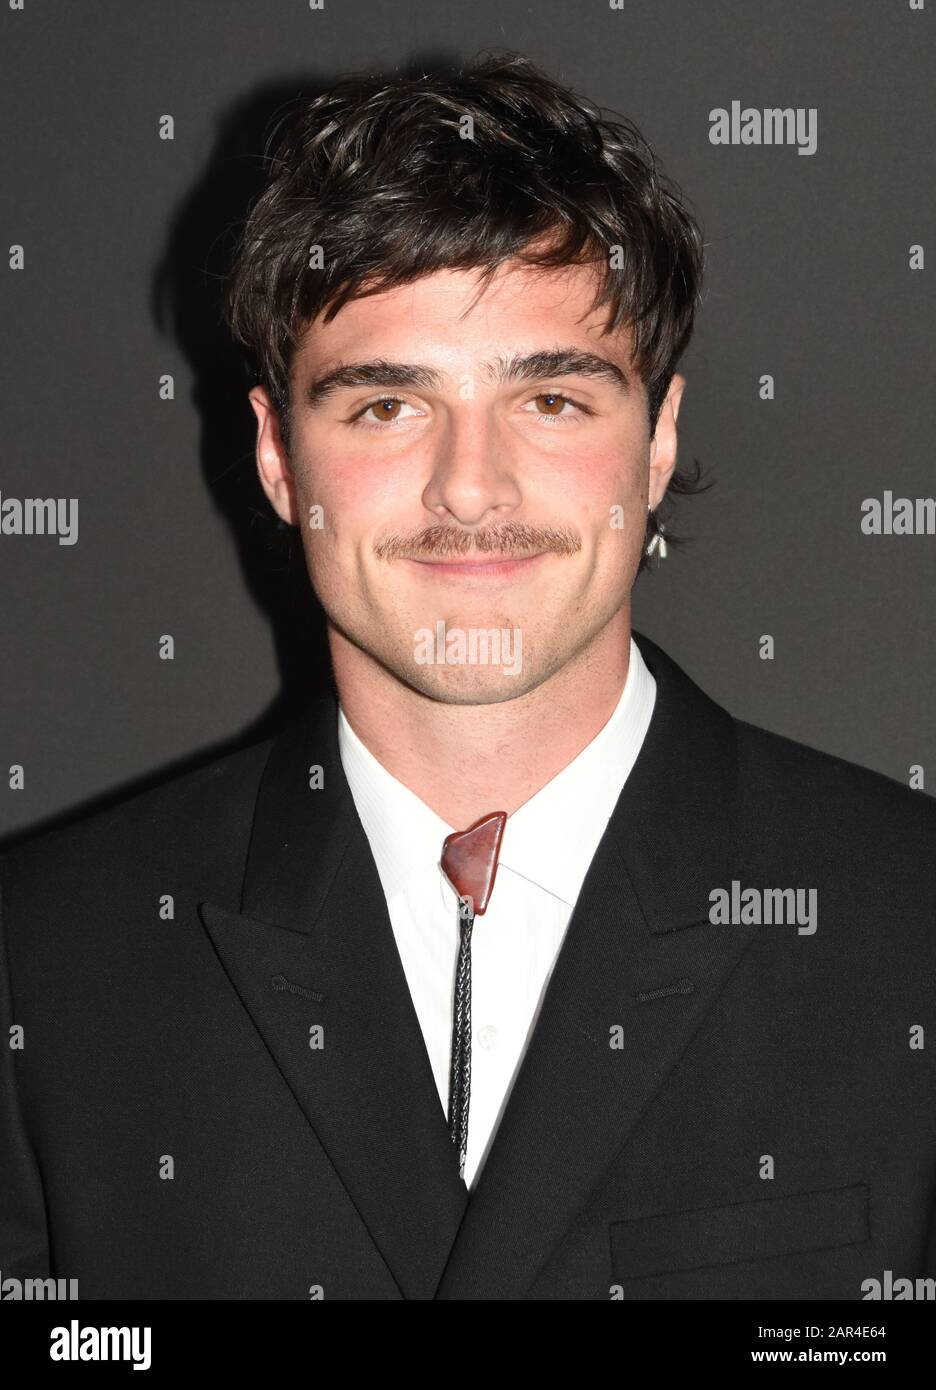 Jacob Elordi High Resolution Stock Photography And Images Alamy